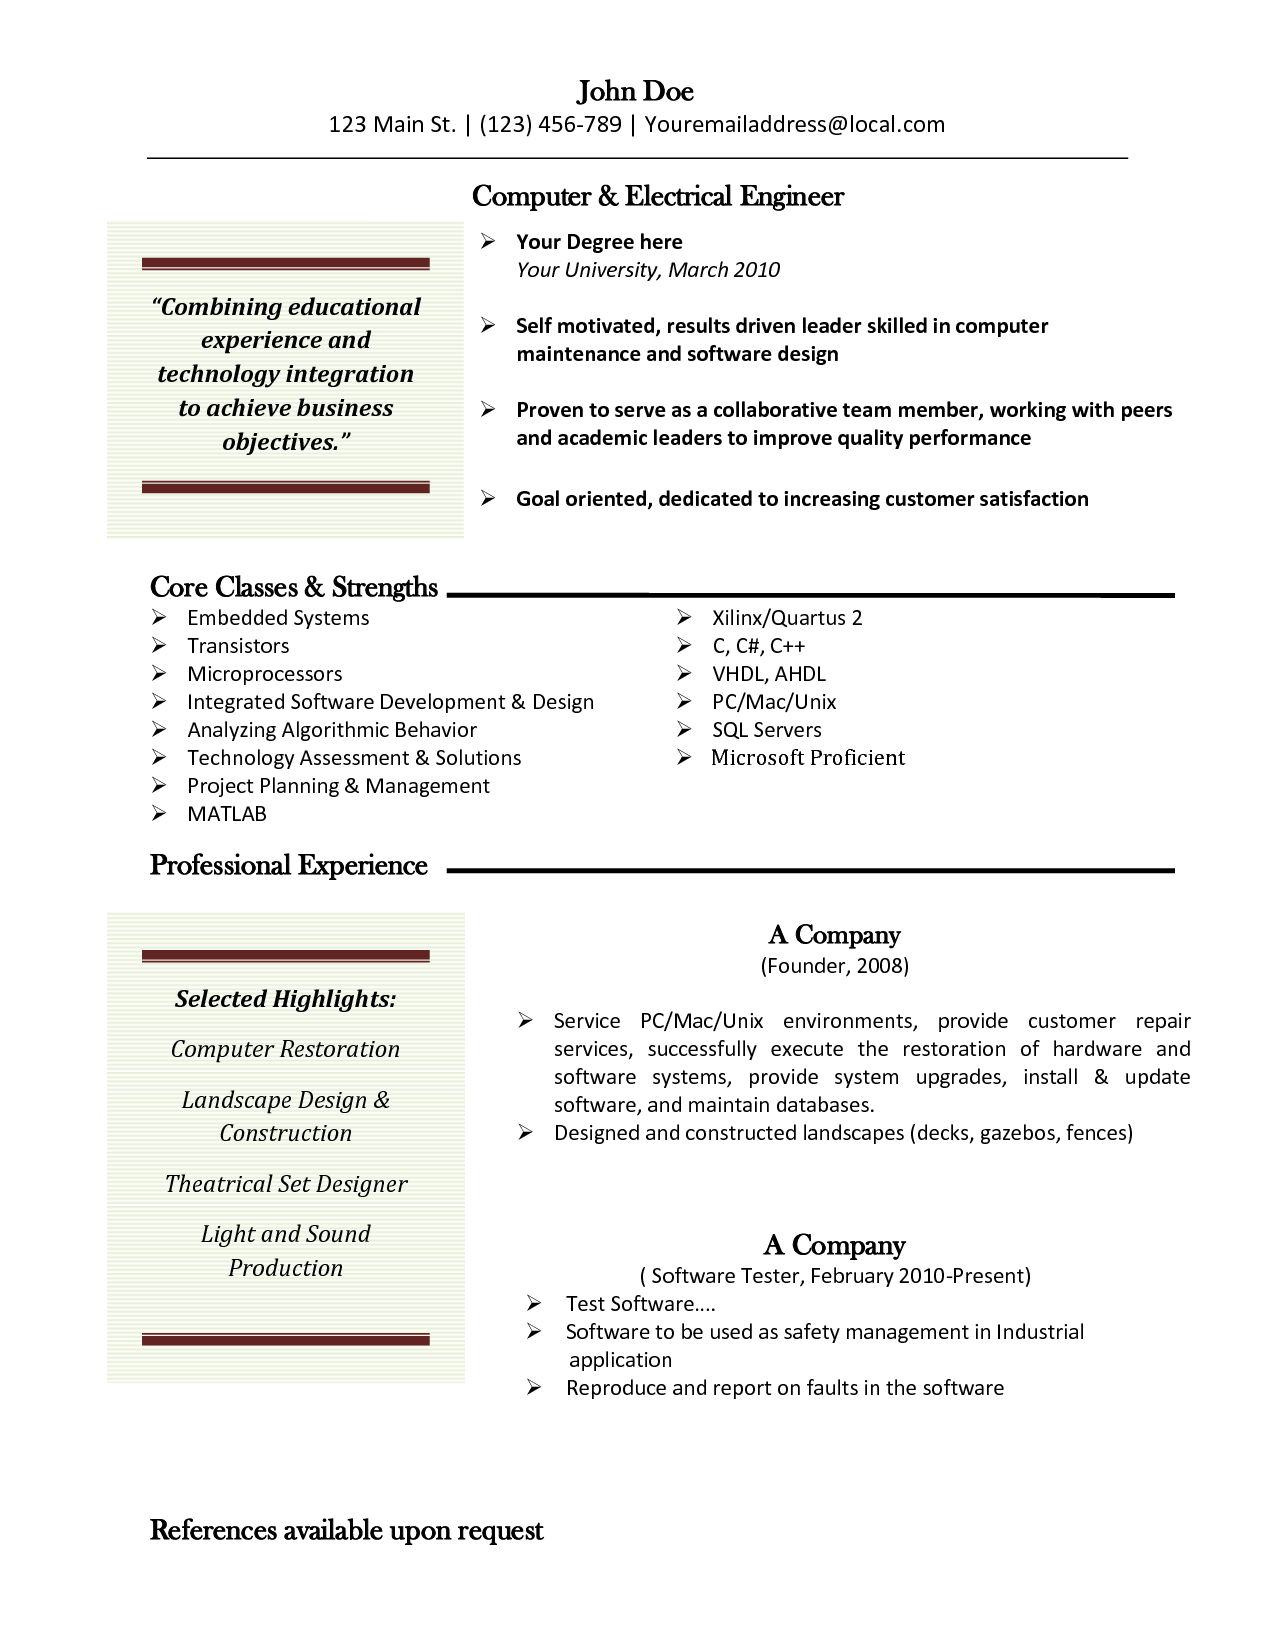 Free Download Resume Templates Resume Templates For Mac  Httpwwwjobresumewebsiteresume